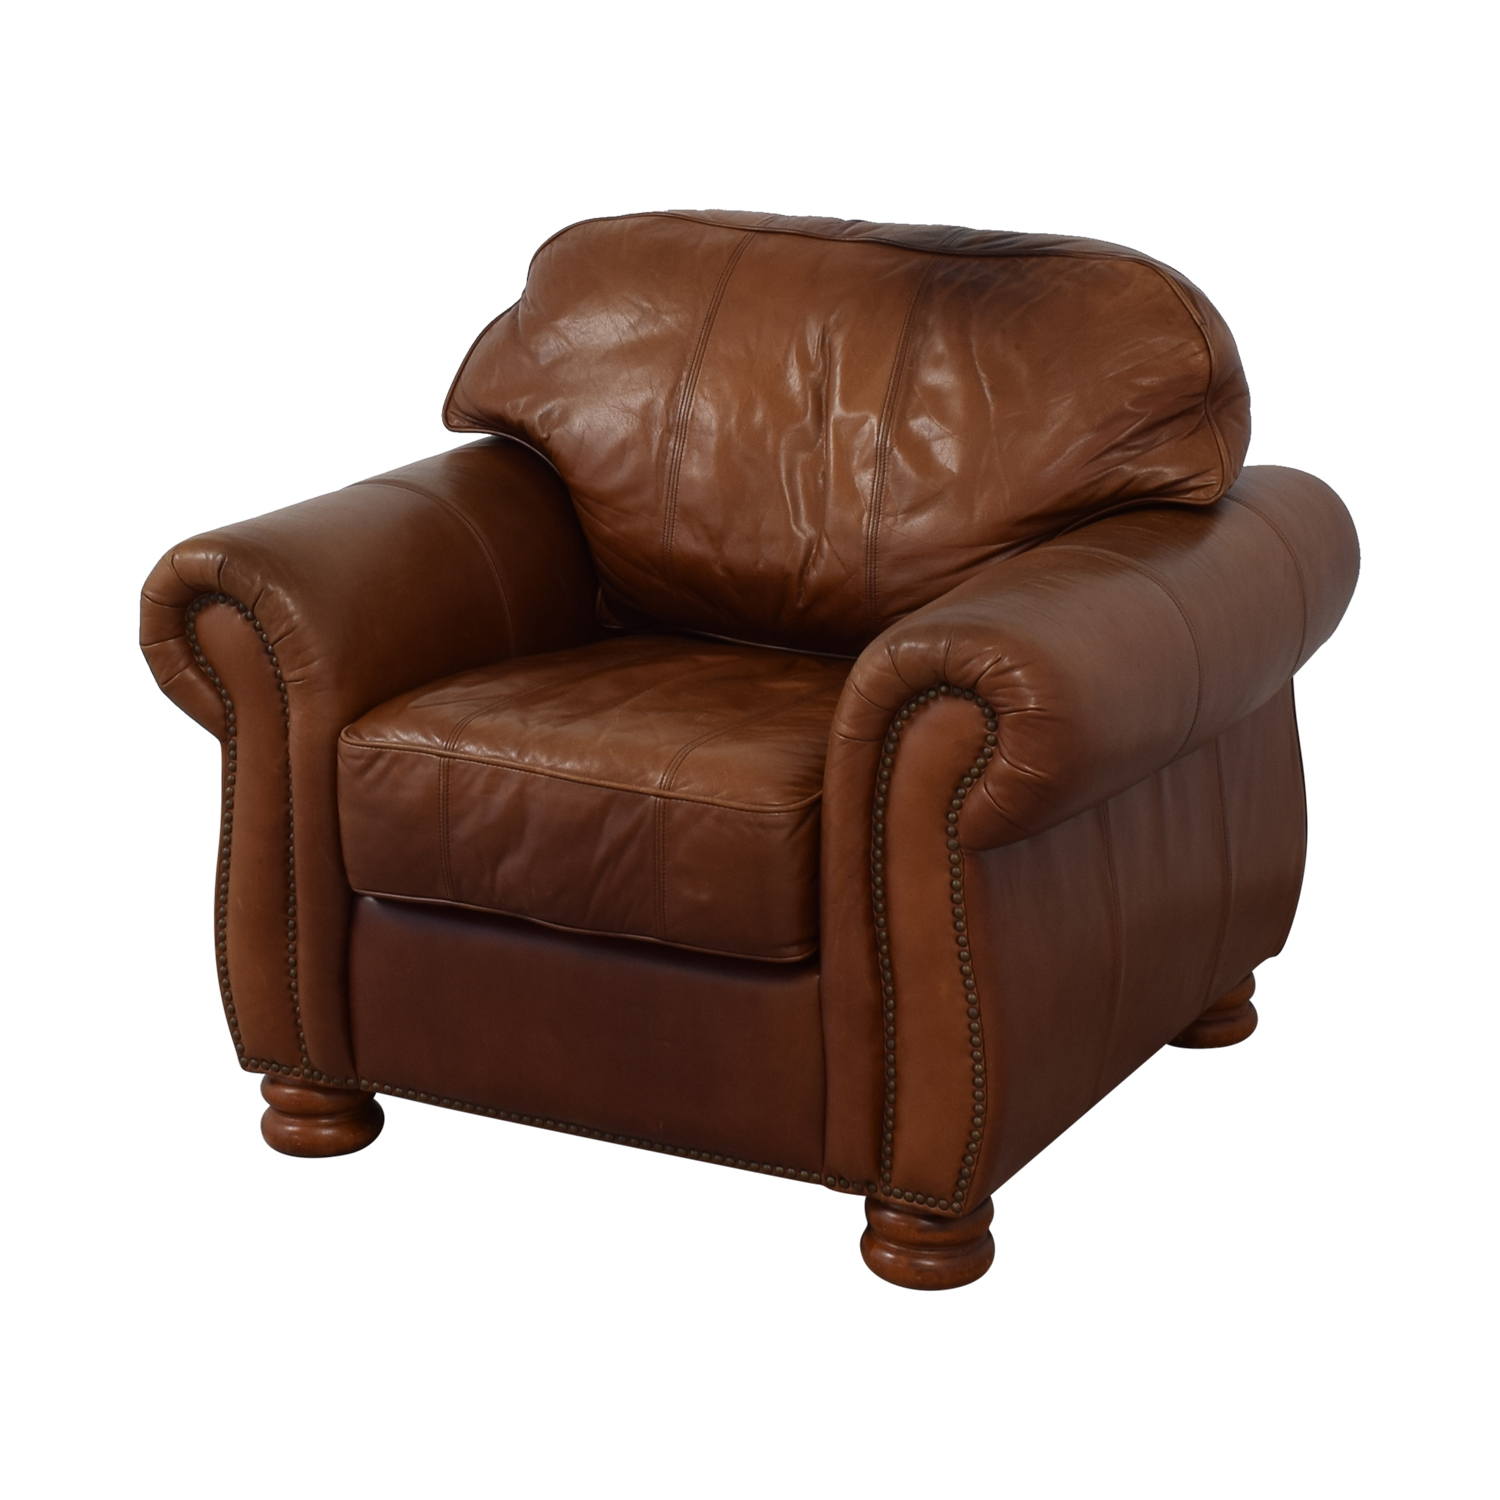 - 90% OFF - Thomasville Thomasville Leather Sofa Chair / Chairs